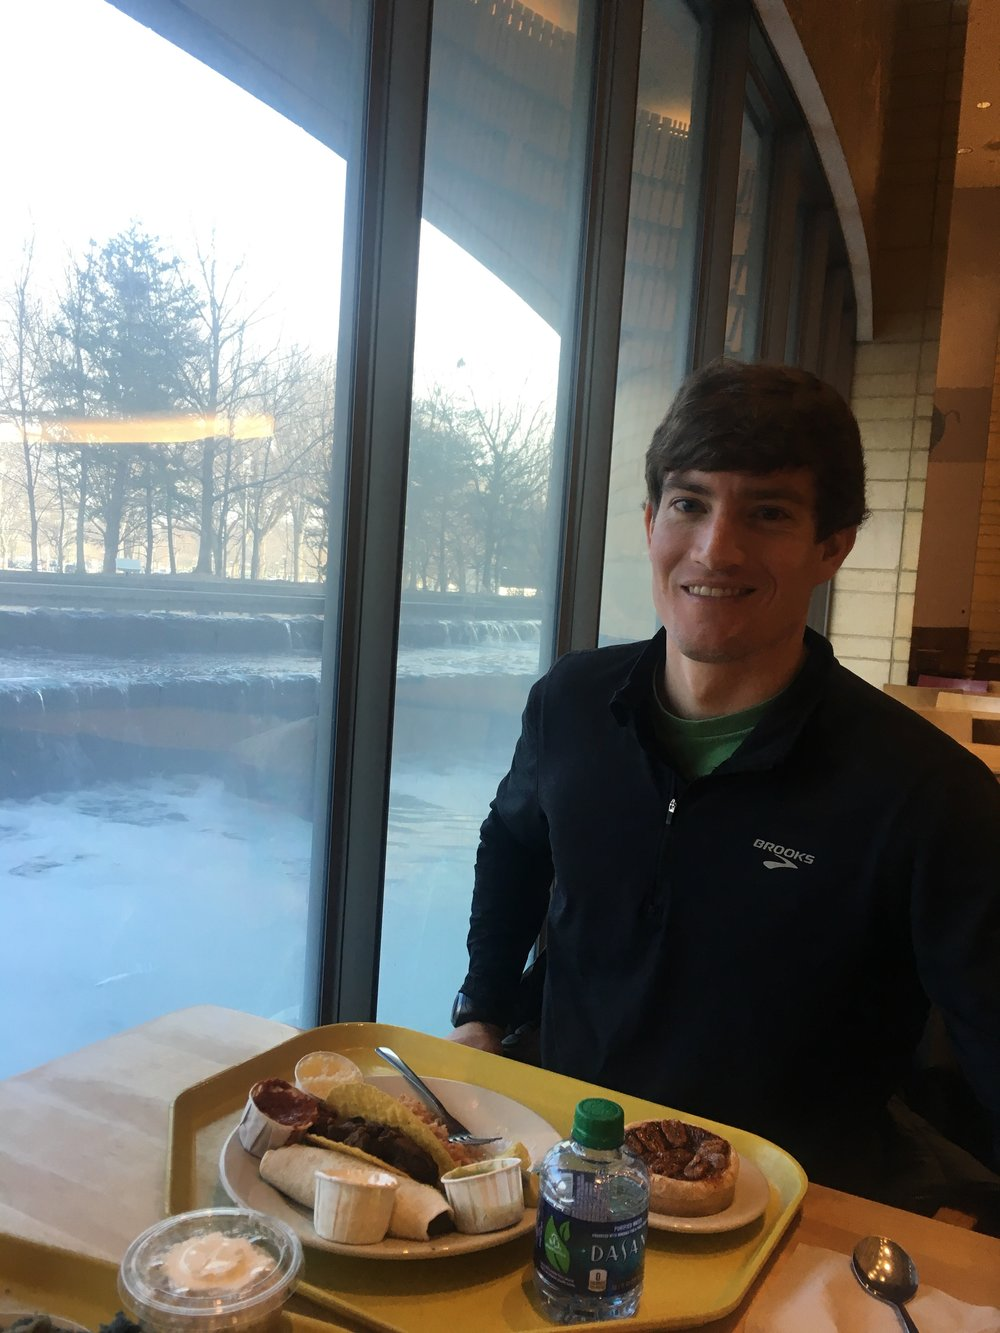 John, enjoying lunch at the Museum of the American Indian